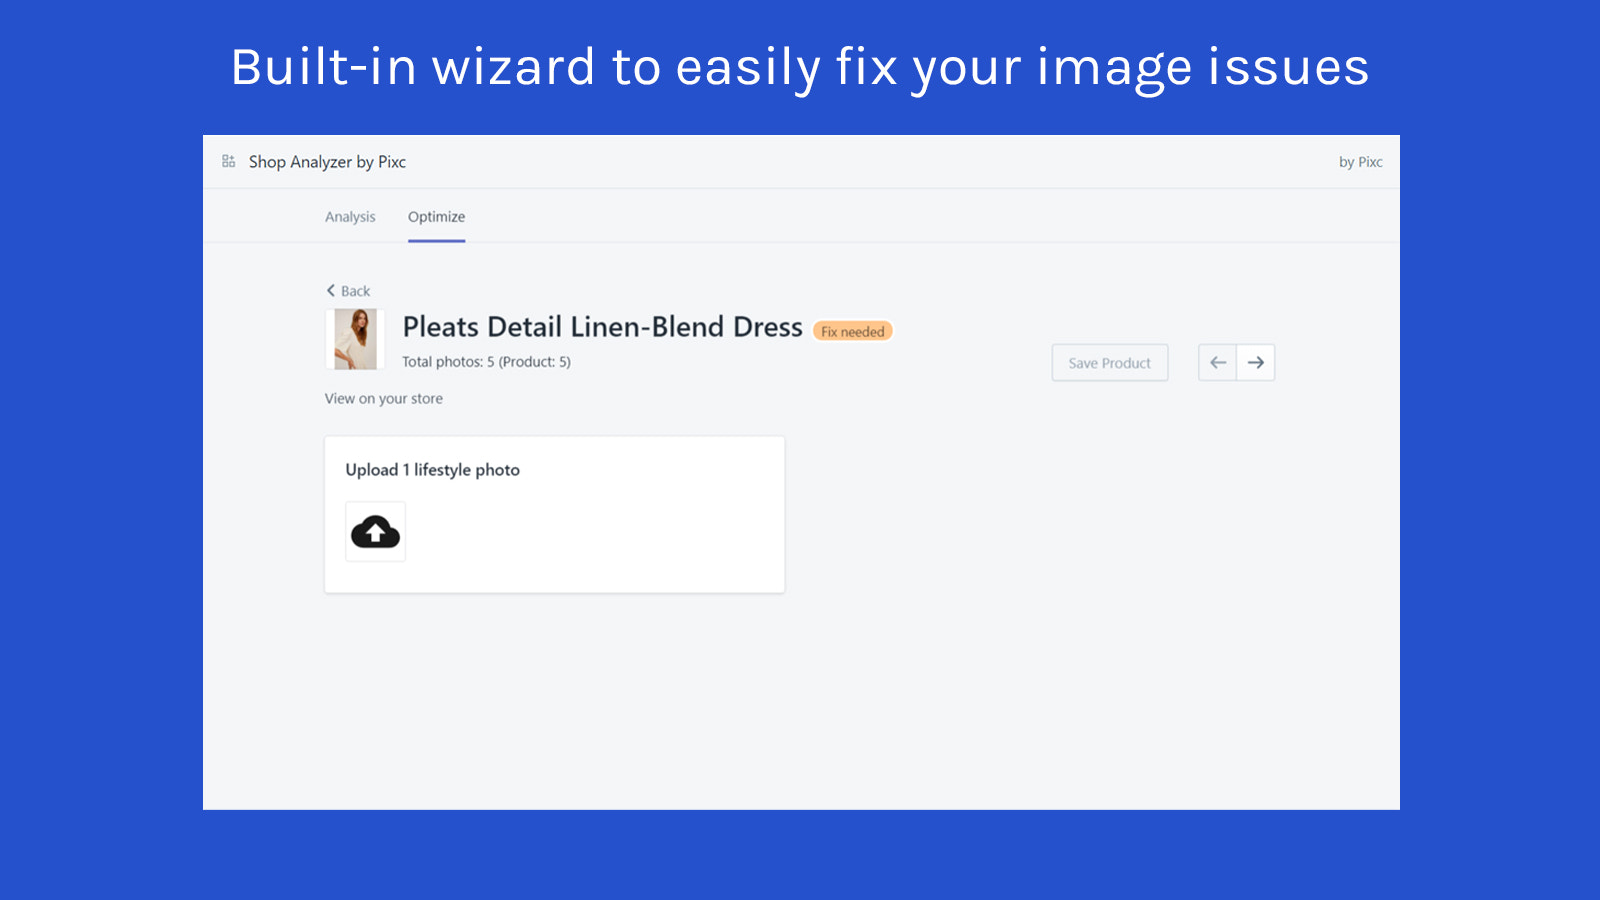 wizard tool available to fix your issues right away